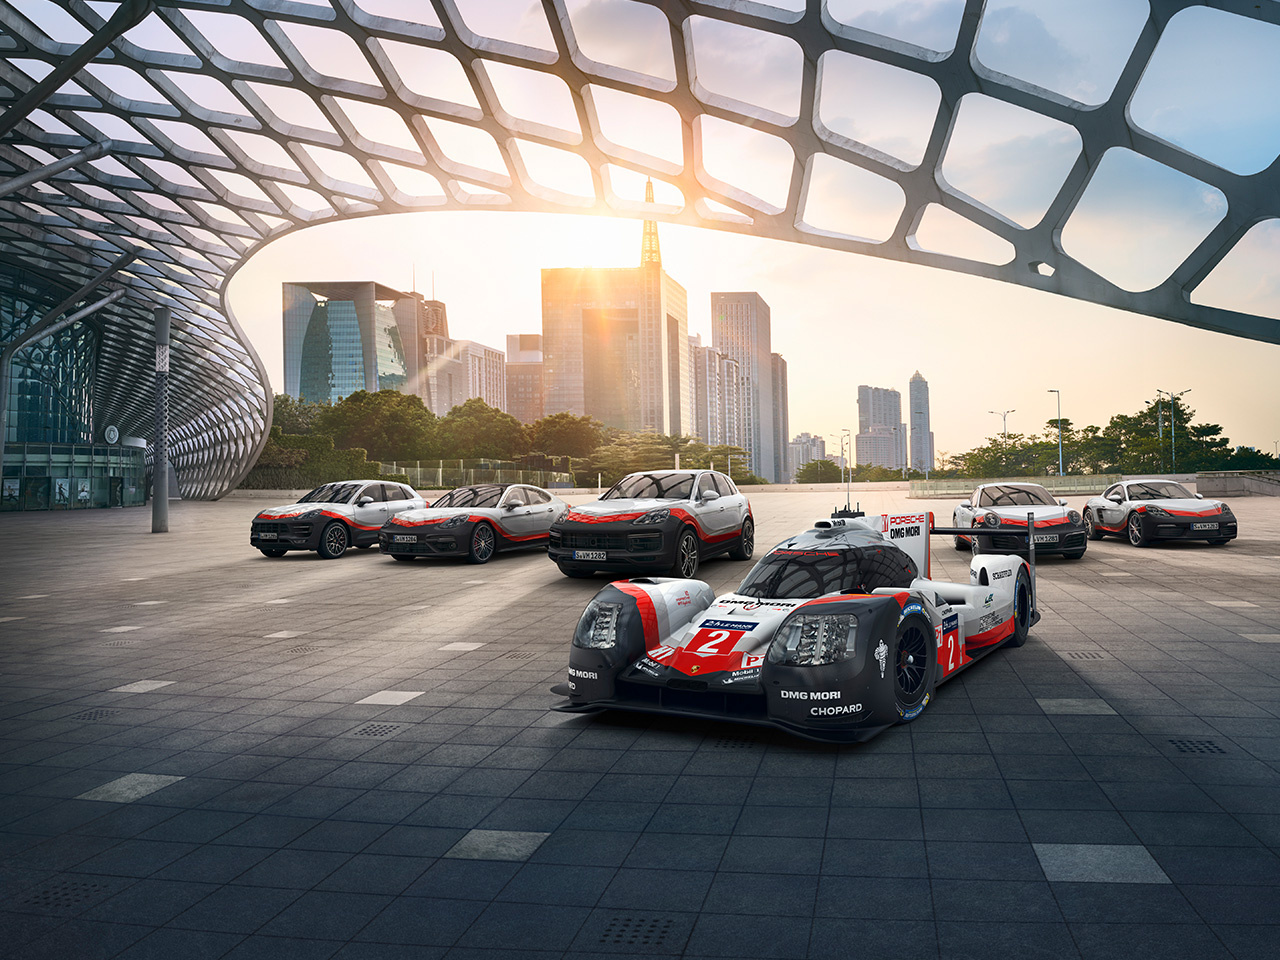 Porsche 919 Hybrid: End of an era. Birth of a legend.